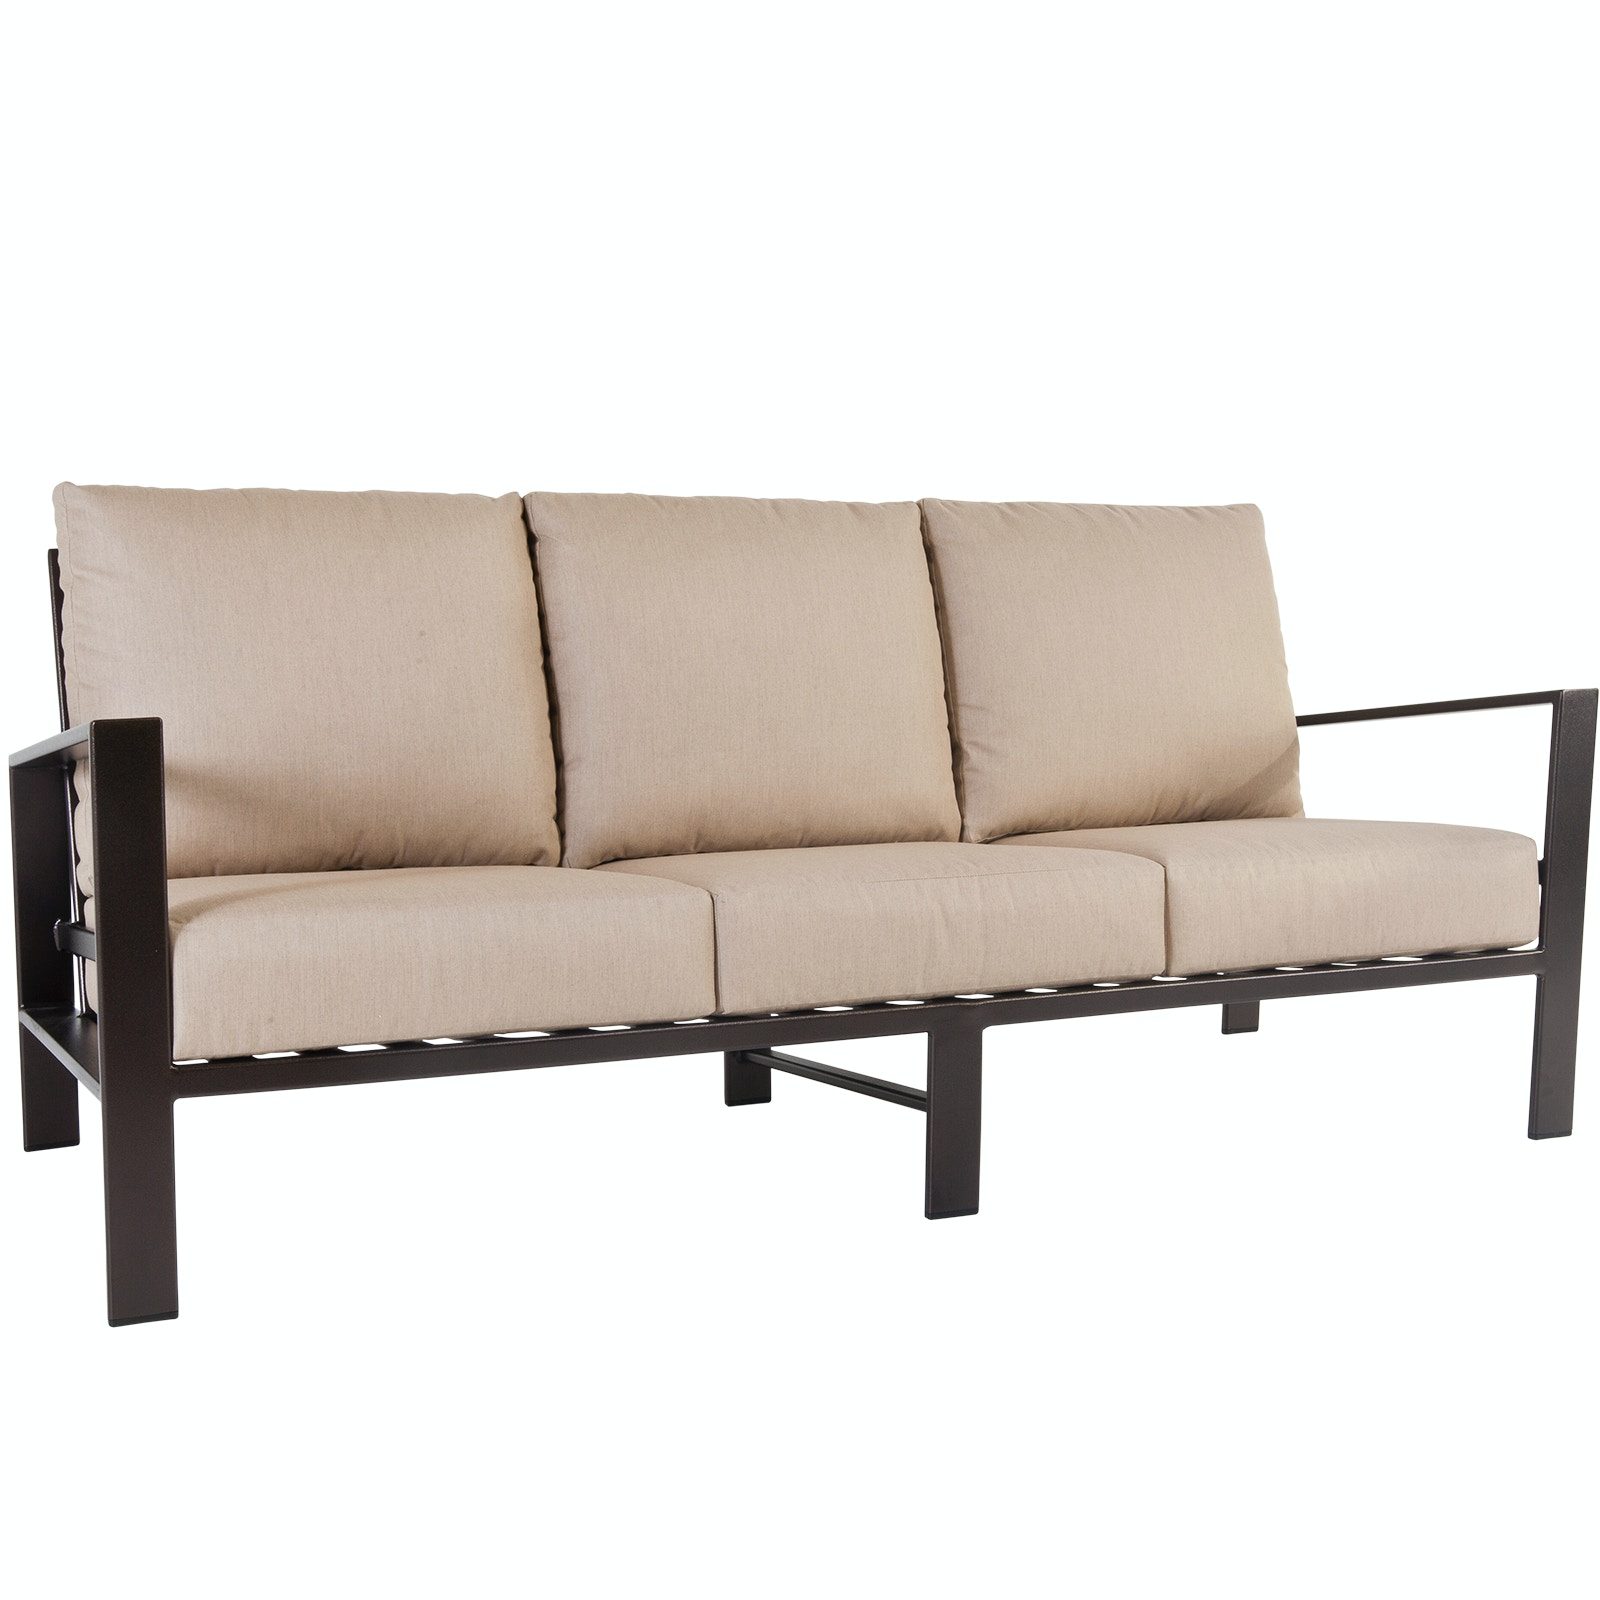 Lee Furniture Sofa Shown With Raf Loveseat Shown With Laf